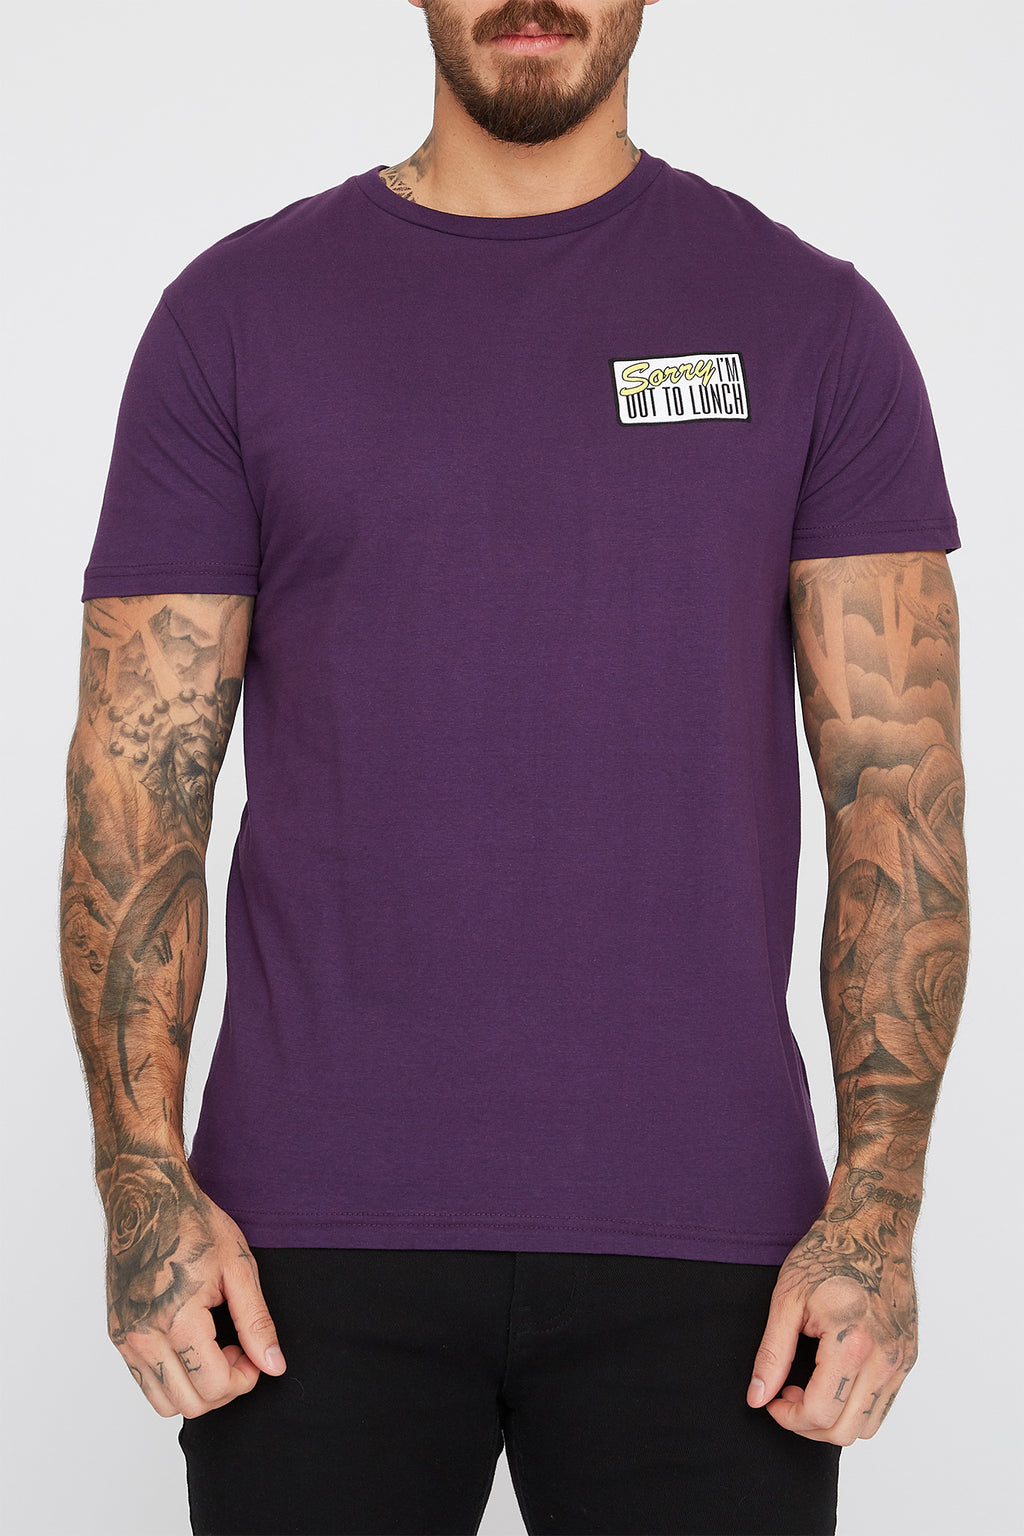 West49 Mens Sorry Out To Lunch T-Shirt